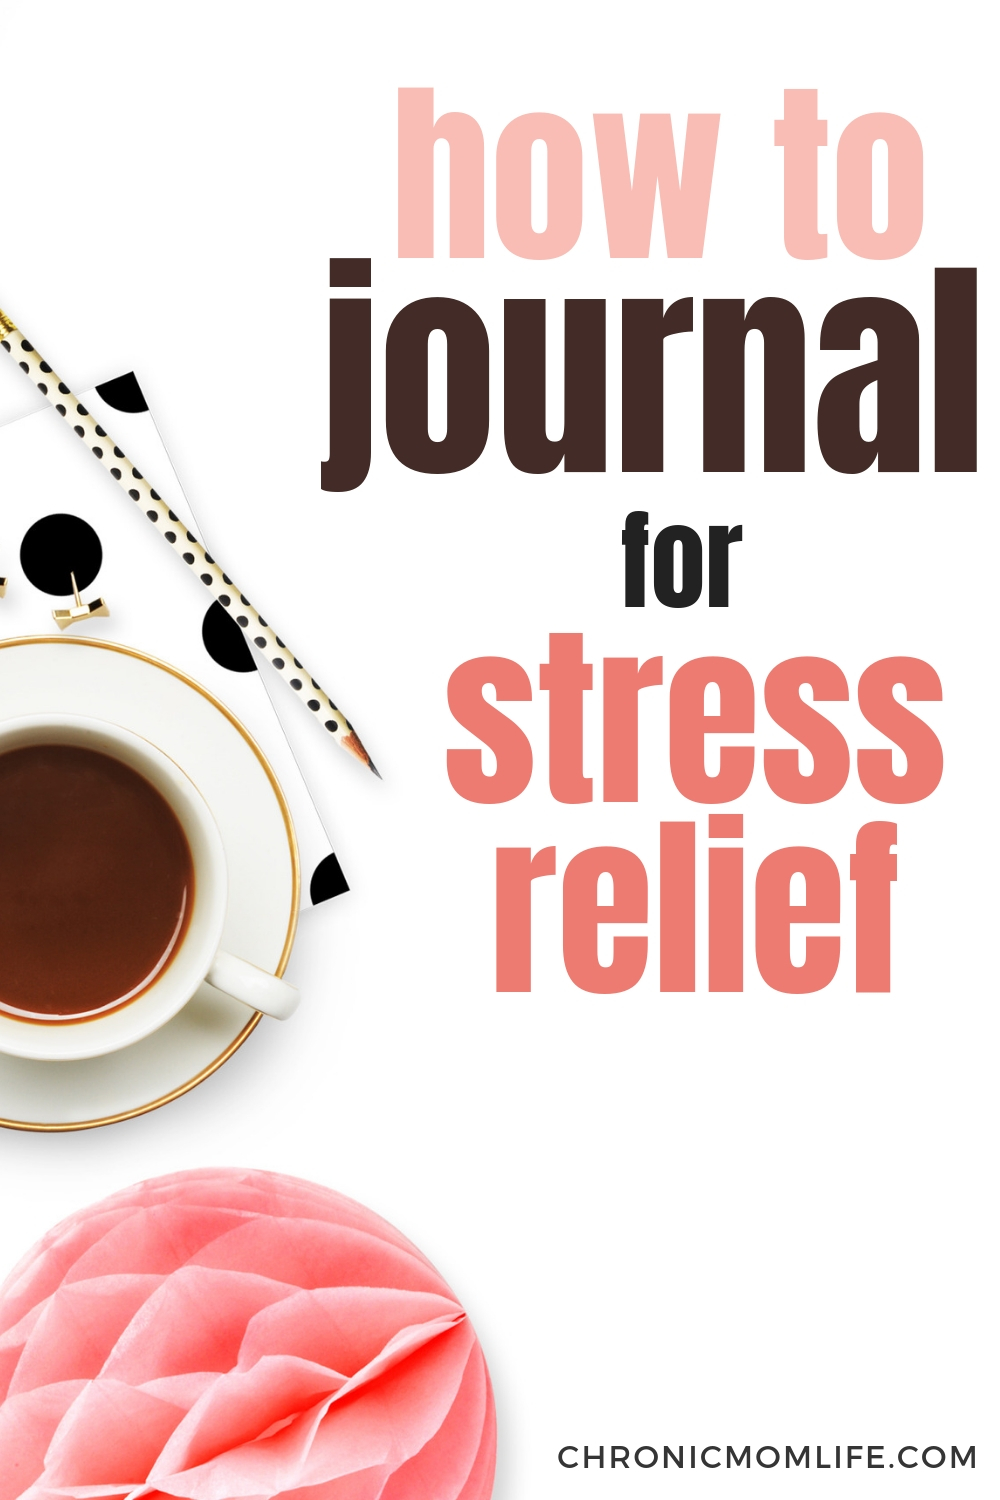 How to journal for stress relief #journaling #bulletjournal #selfcare